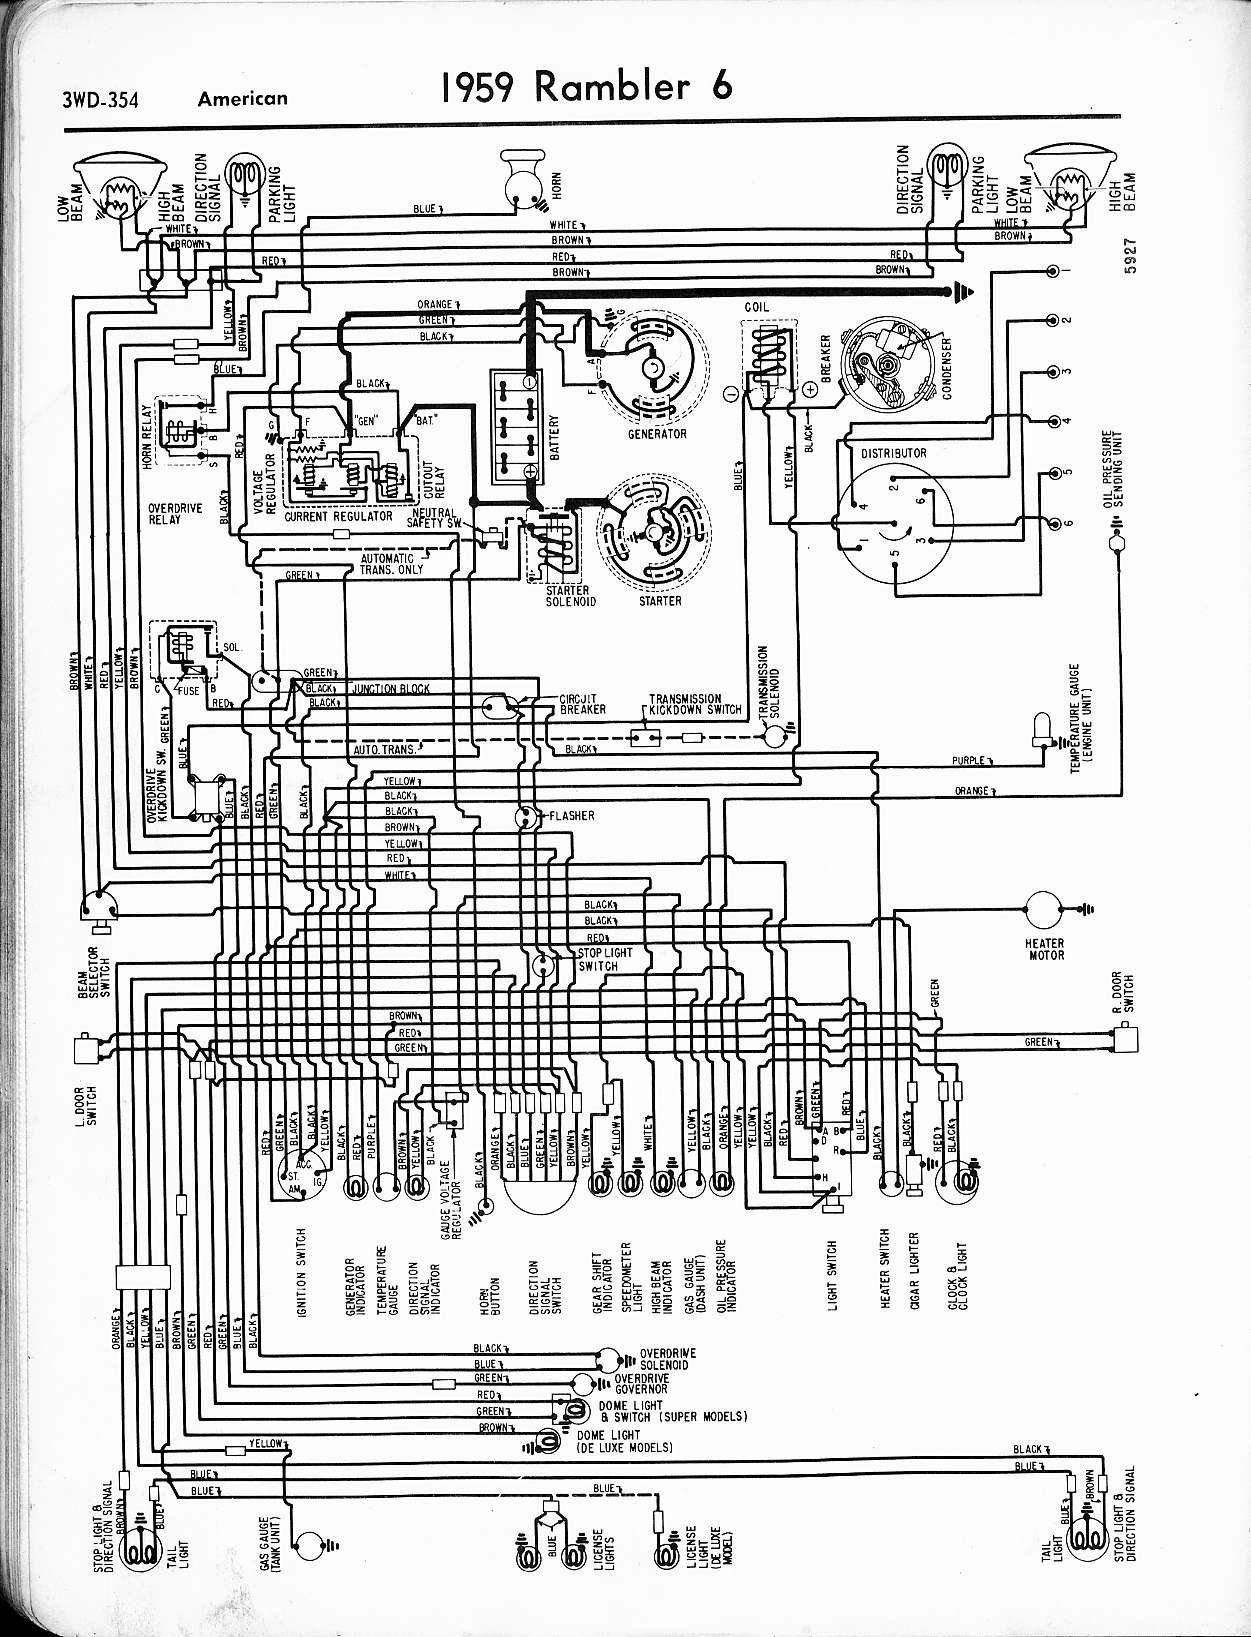 Old Car Wiring Diagrams Basic System Schematics Race Harness Rambler The Manual Project Rh Oldcarmanualproject Com Automotive Diagram Vehicle